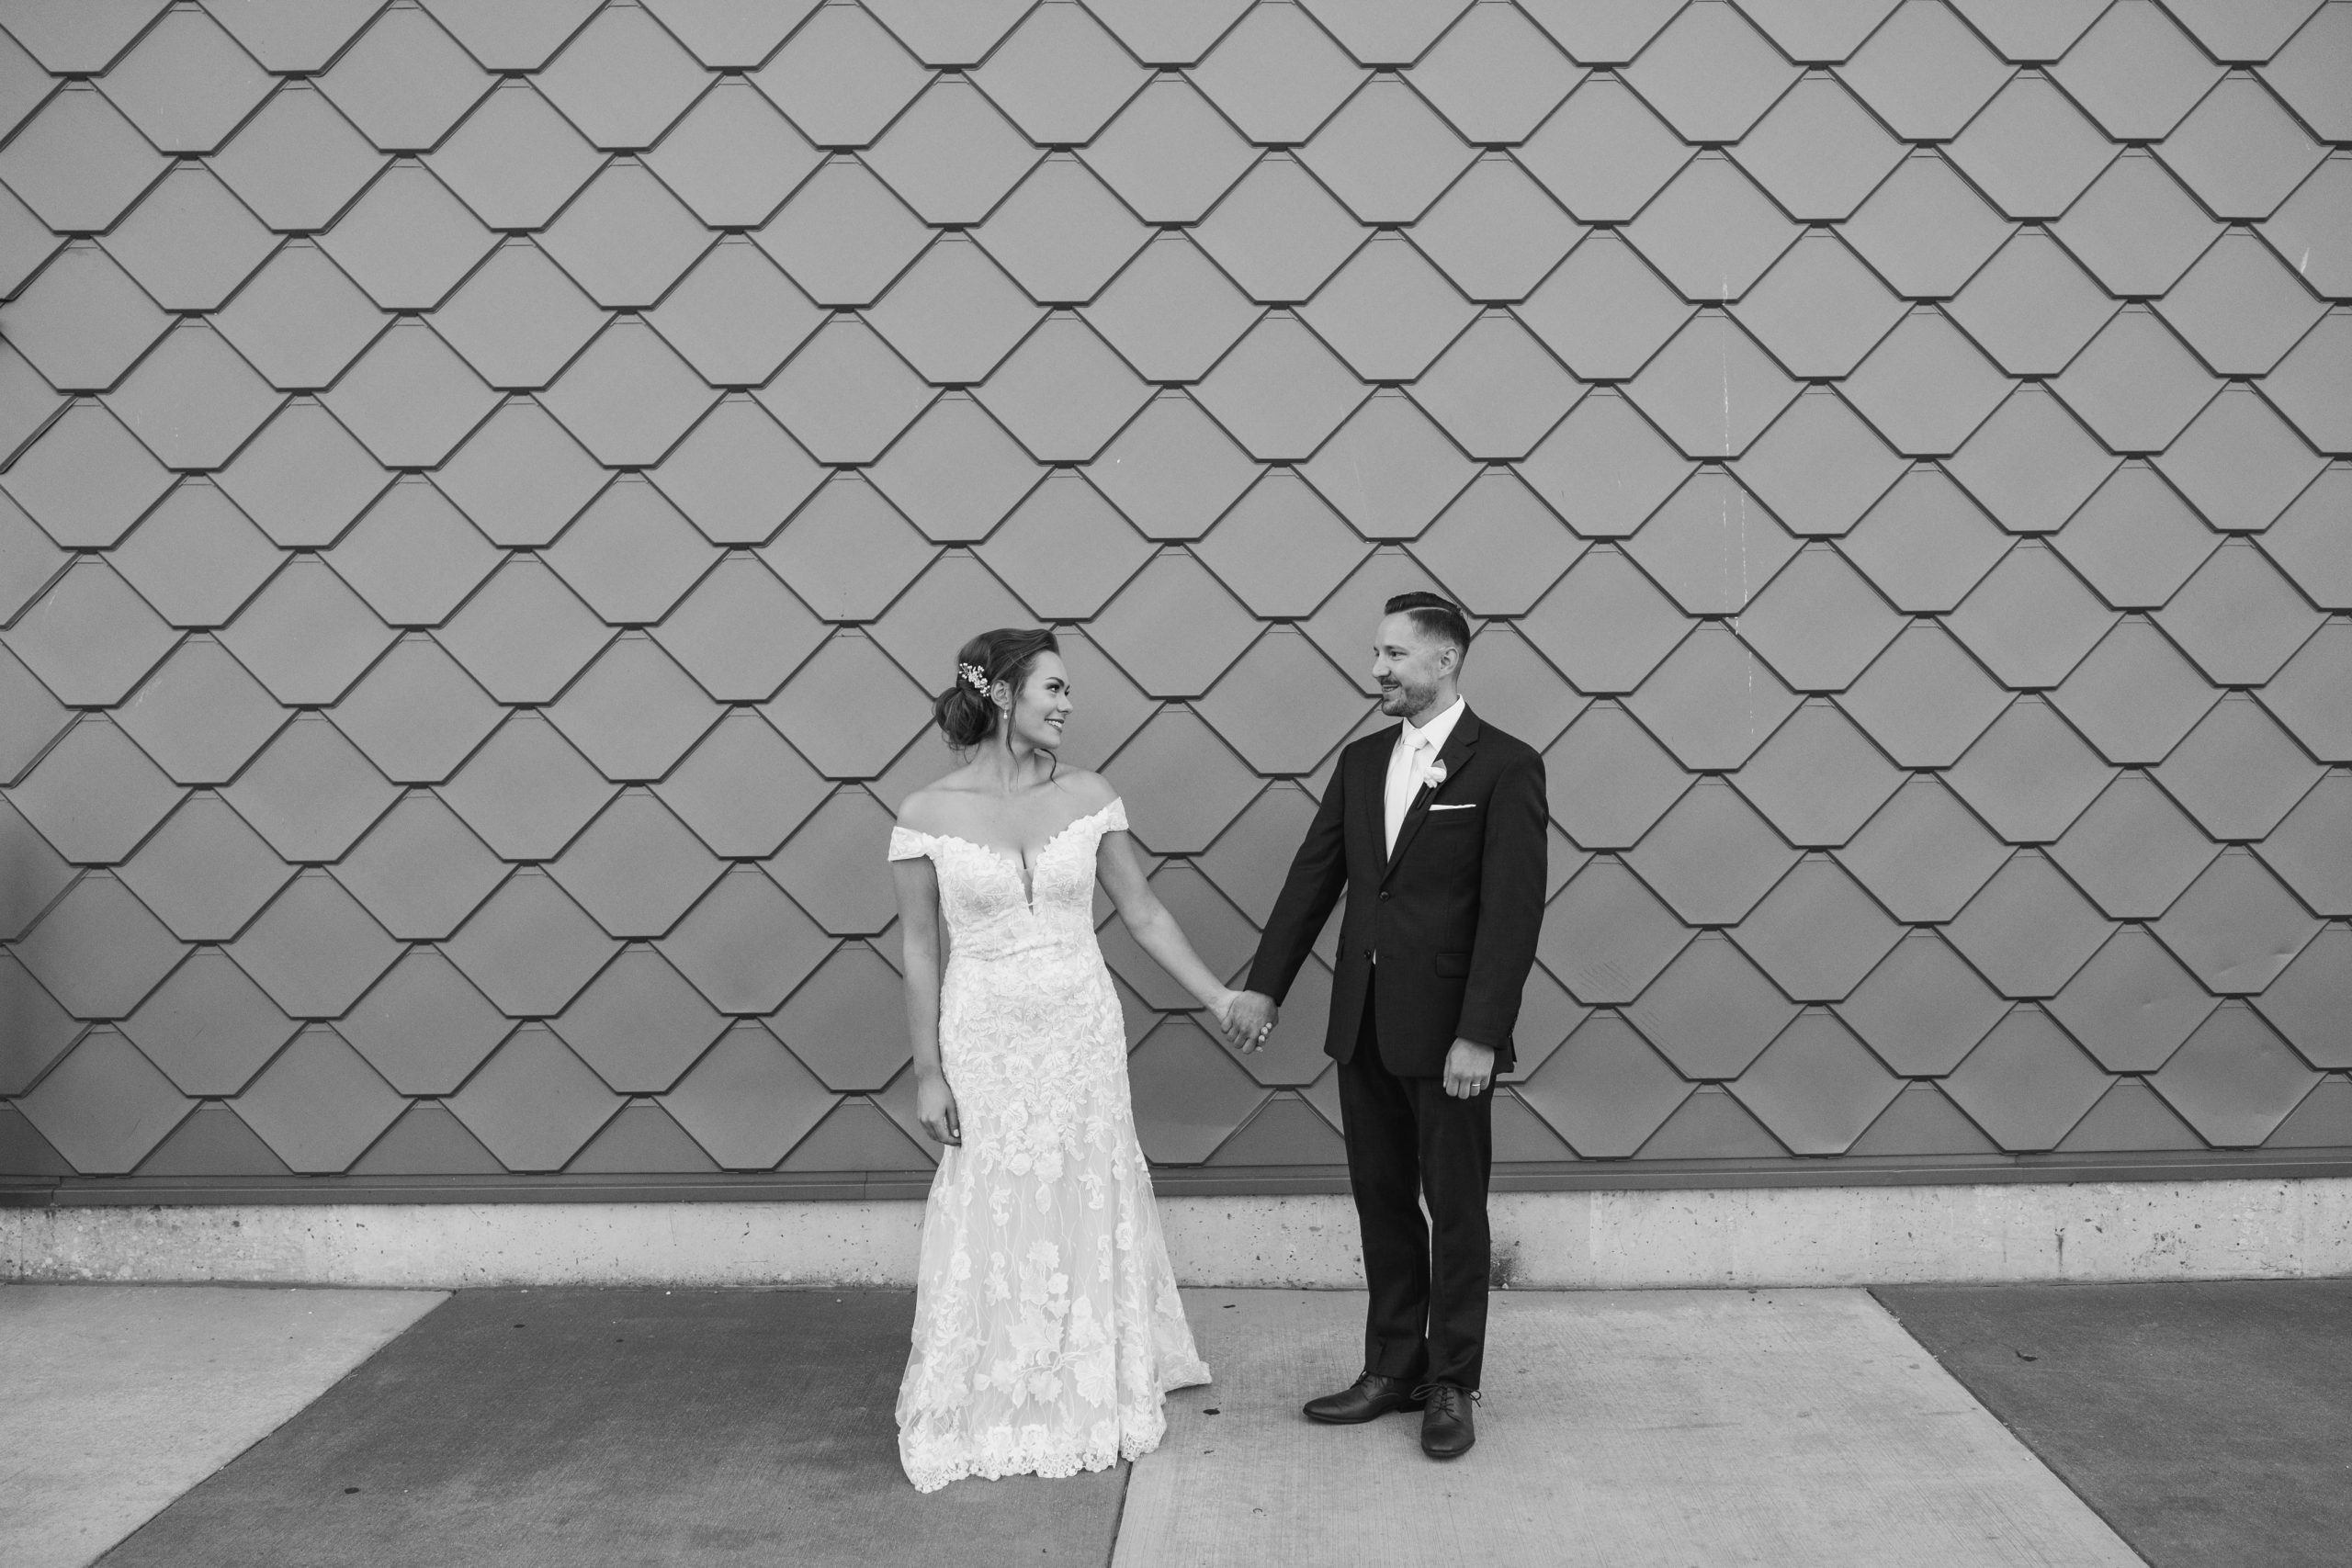 black and white wedding day romantics with artistic wall